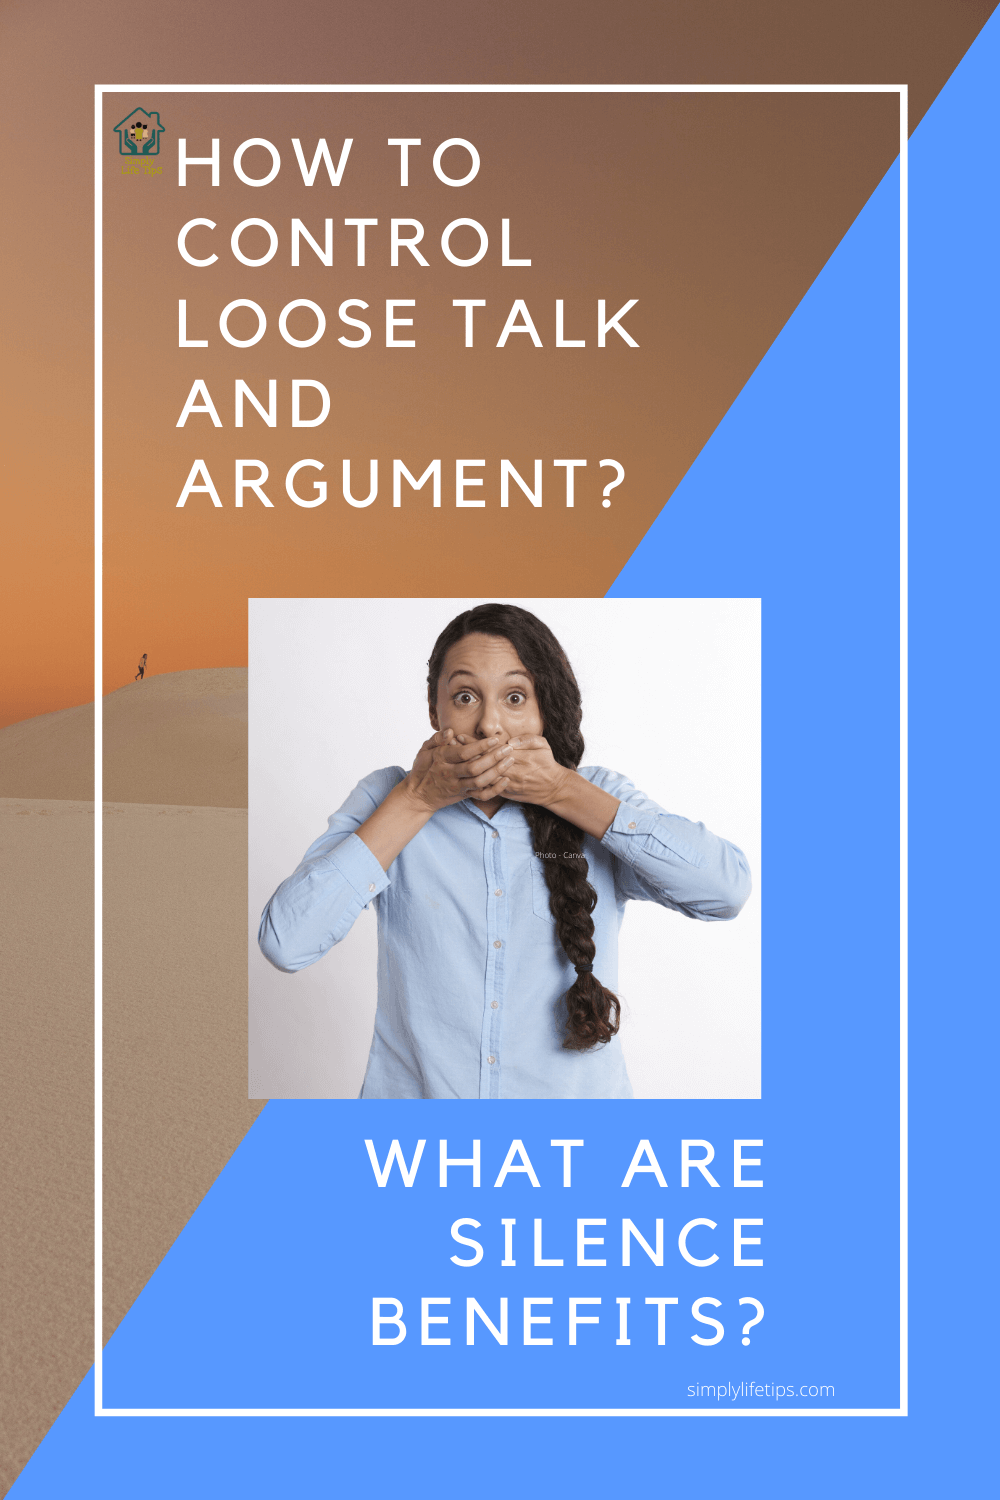 How To Control Loose Talk - Silence Benefits